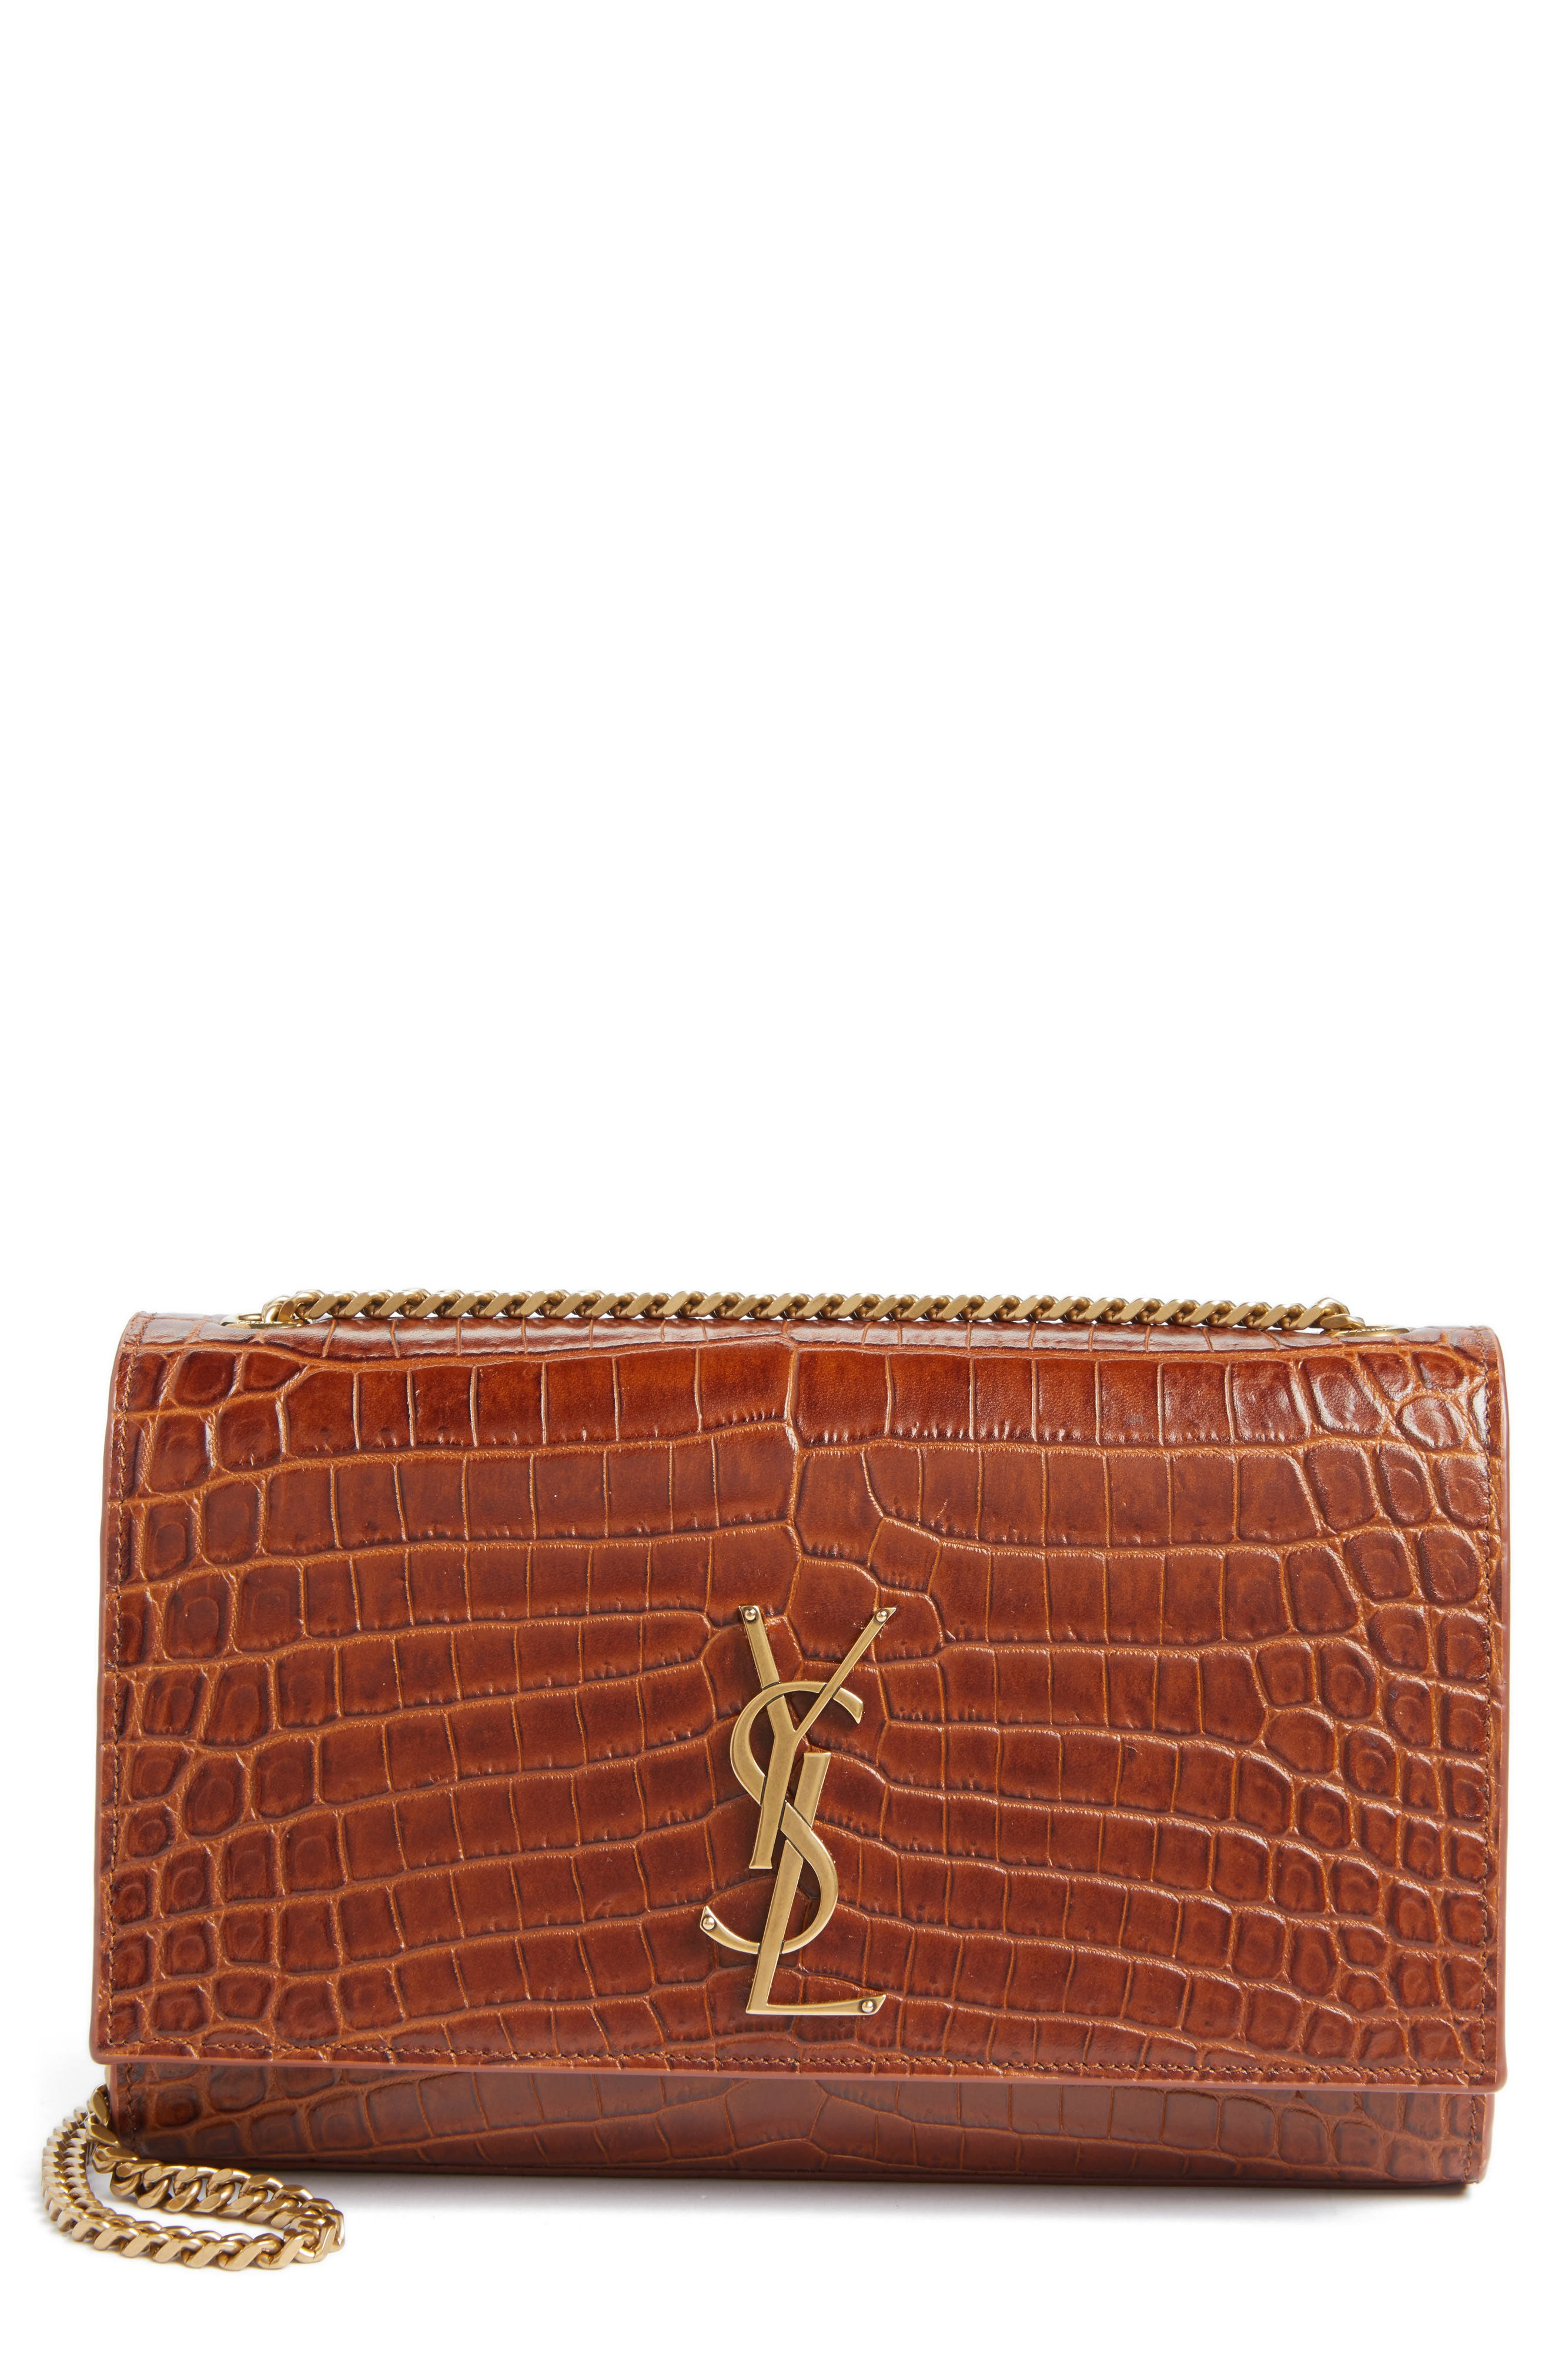 Medium Kate Croc Embossed Leather Shoulder Bag,                             Main thumbnail 1, color,                             294